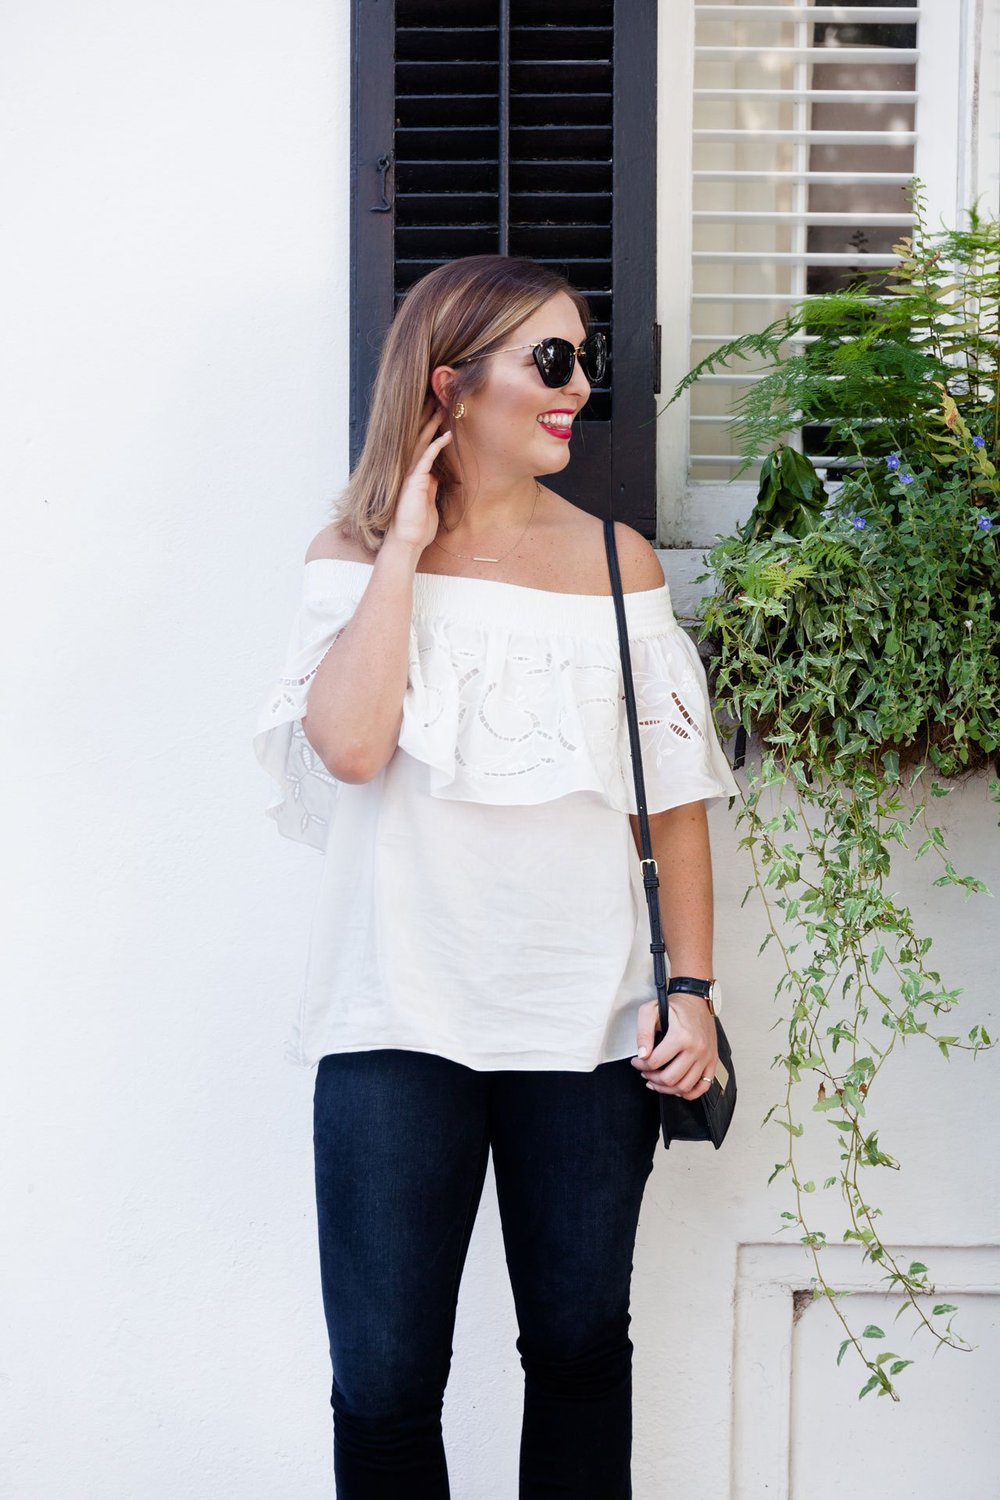 Off the Shoulder Tibi Top - Annie Reeves.